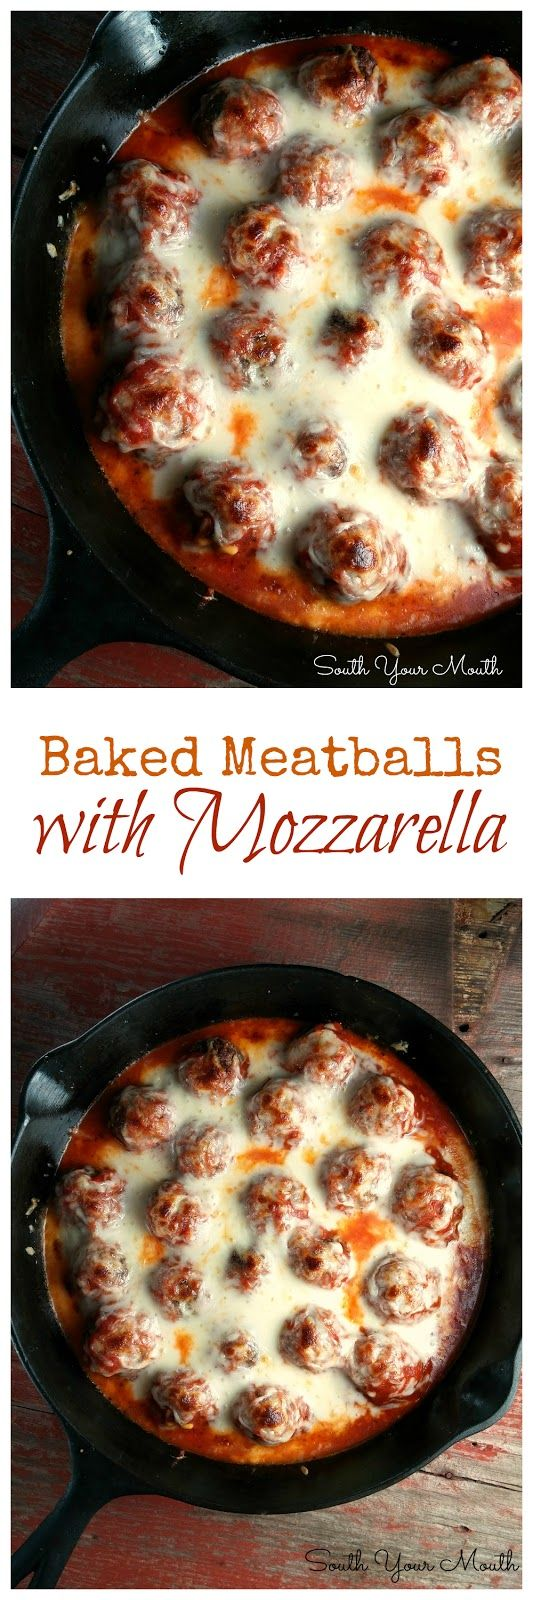 Baked Meatballs with Mozzarella! Italian meatballs baked in tangy marinara and topped with gobs of buttery, gooey mozzarella.